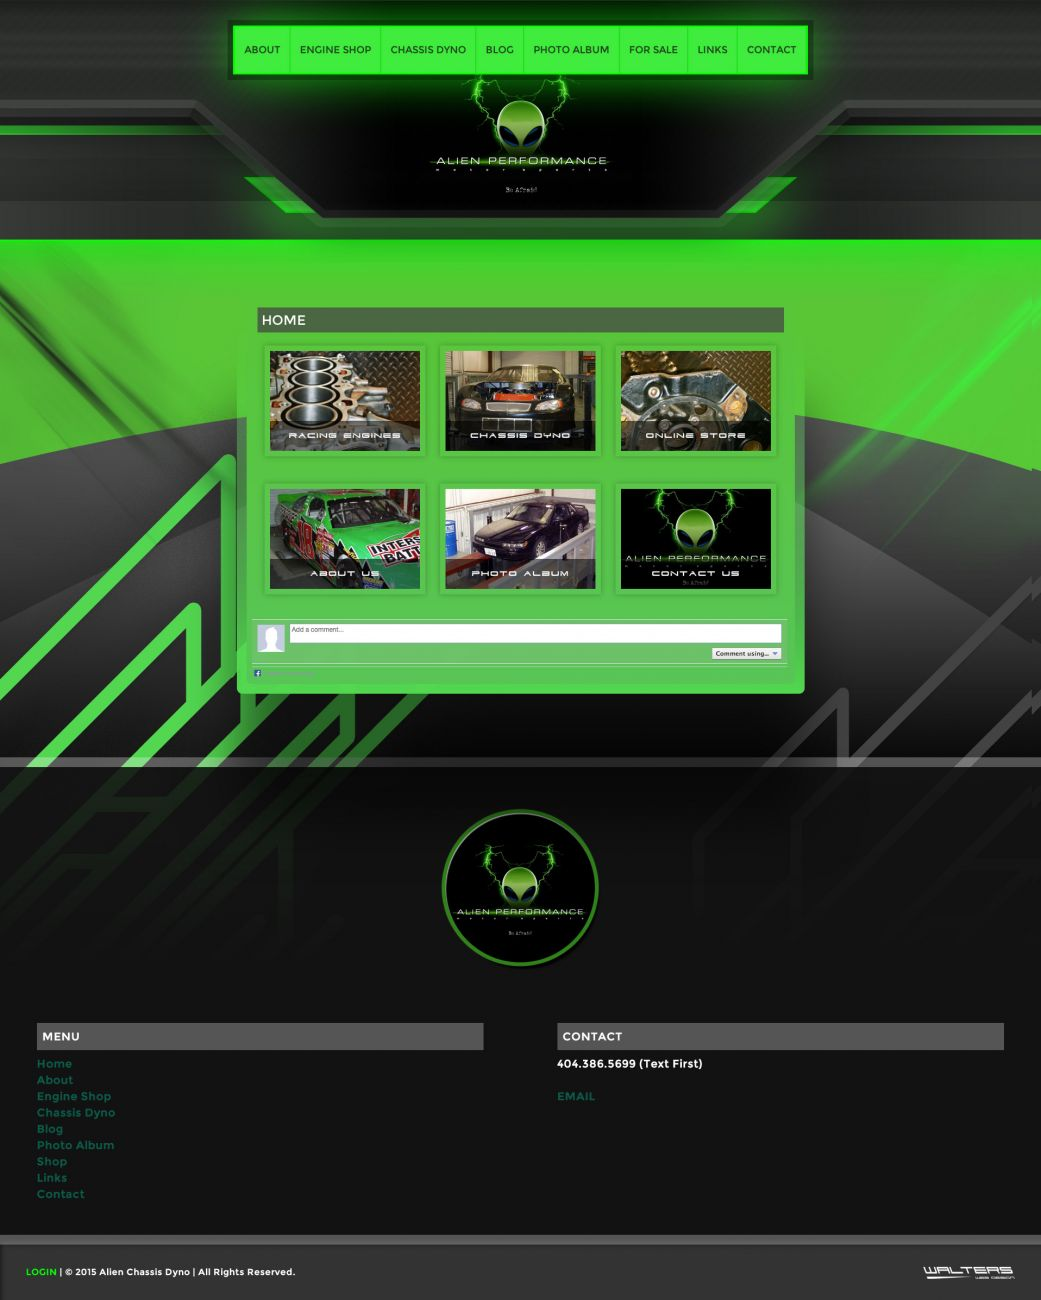 Alien Chassis Dyno Website - Walters Web Design